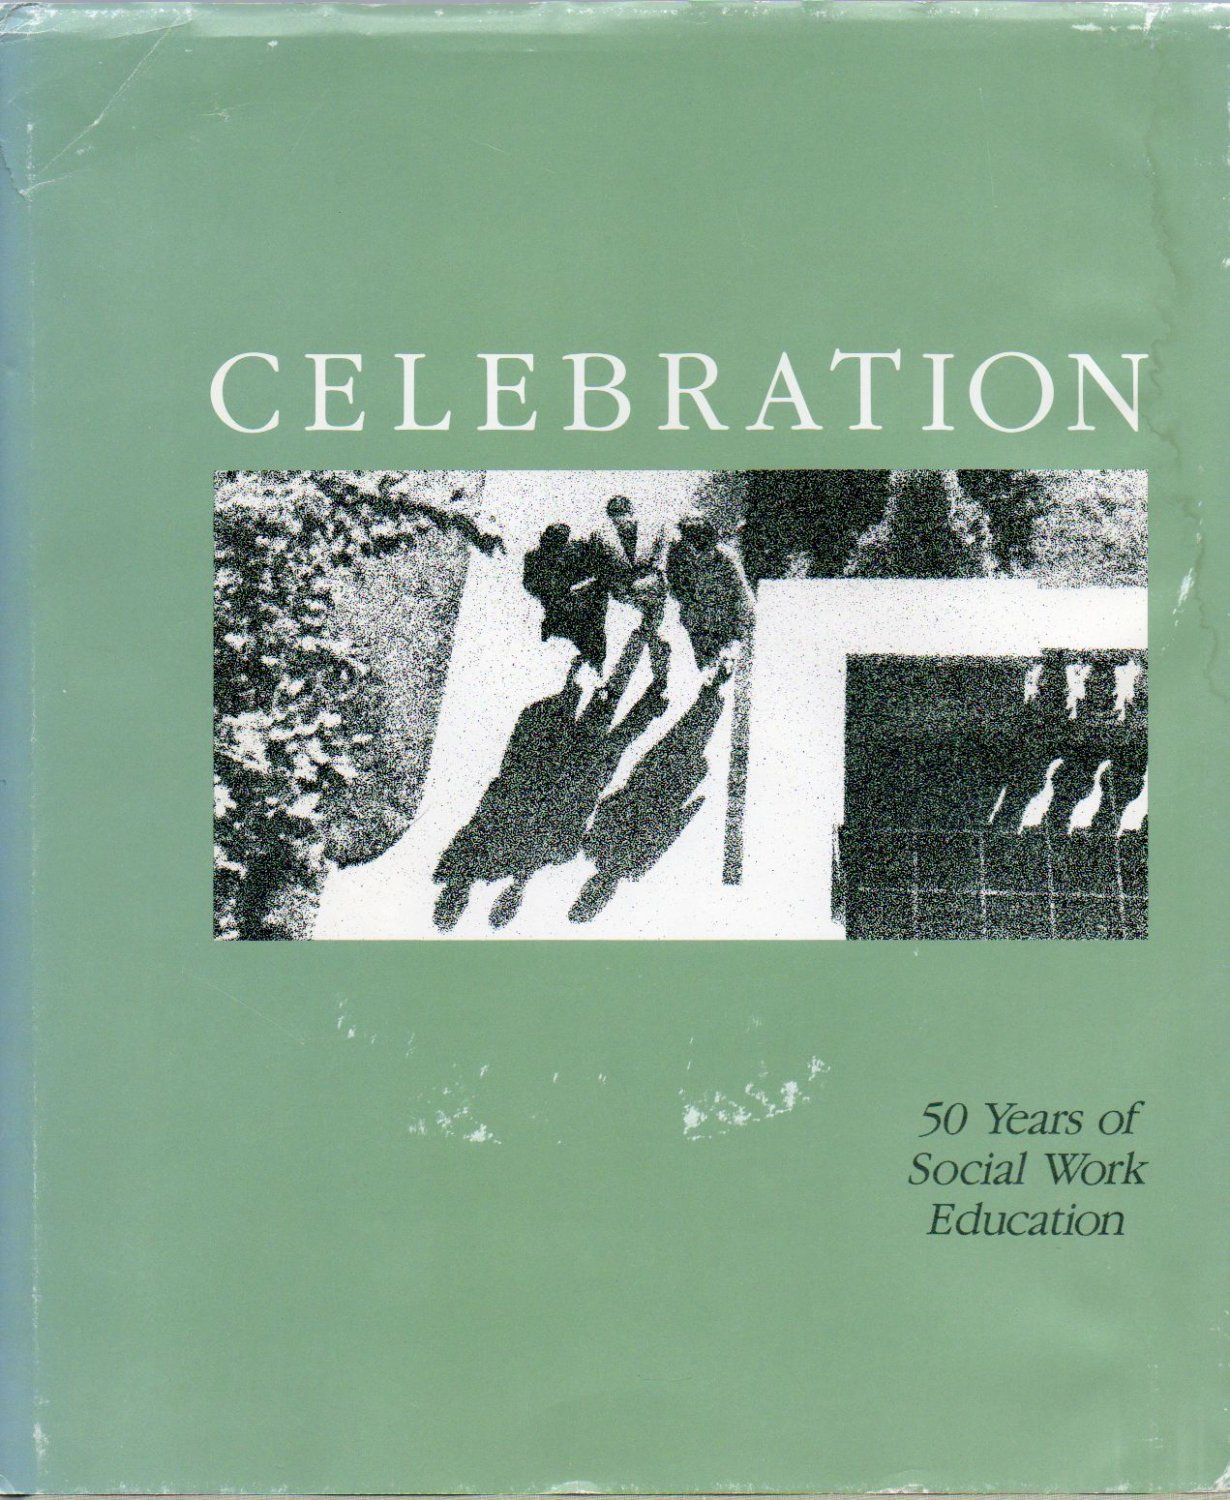 Celebration: 50 Years of Social Work Education (University of Utah) ed Mary Dickson 1987